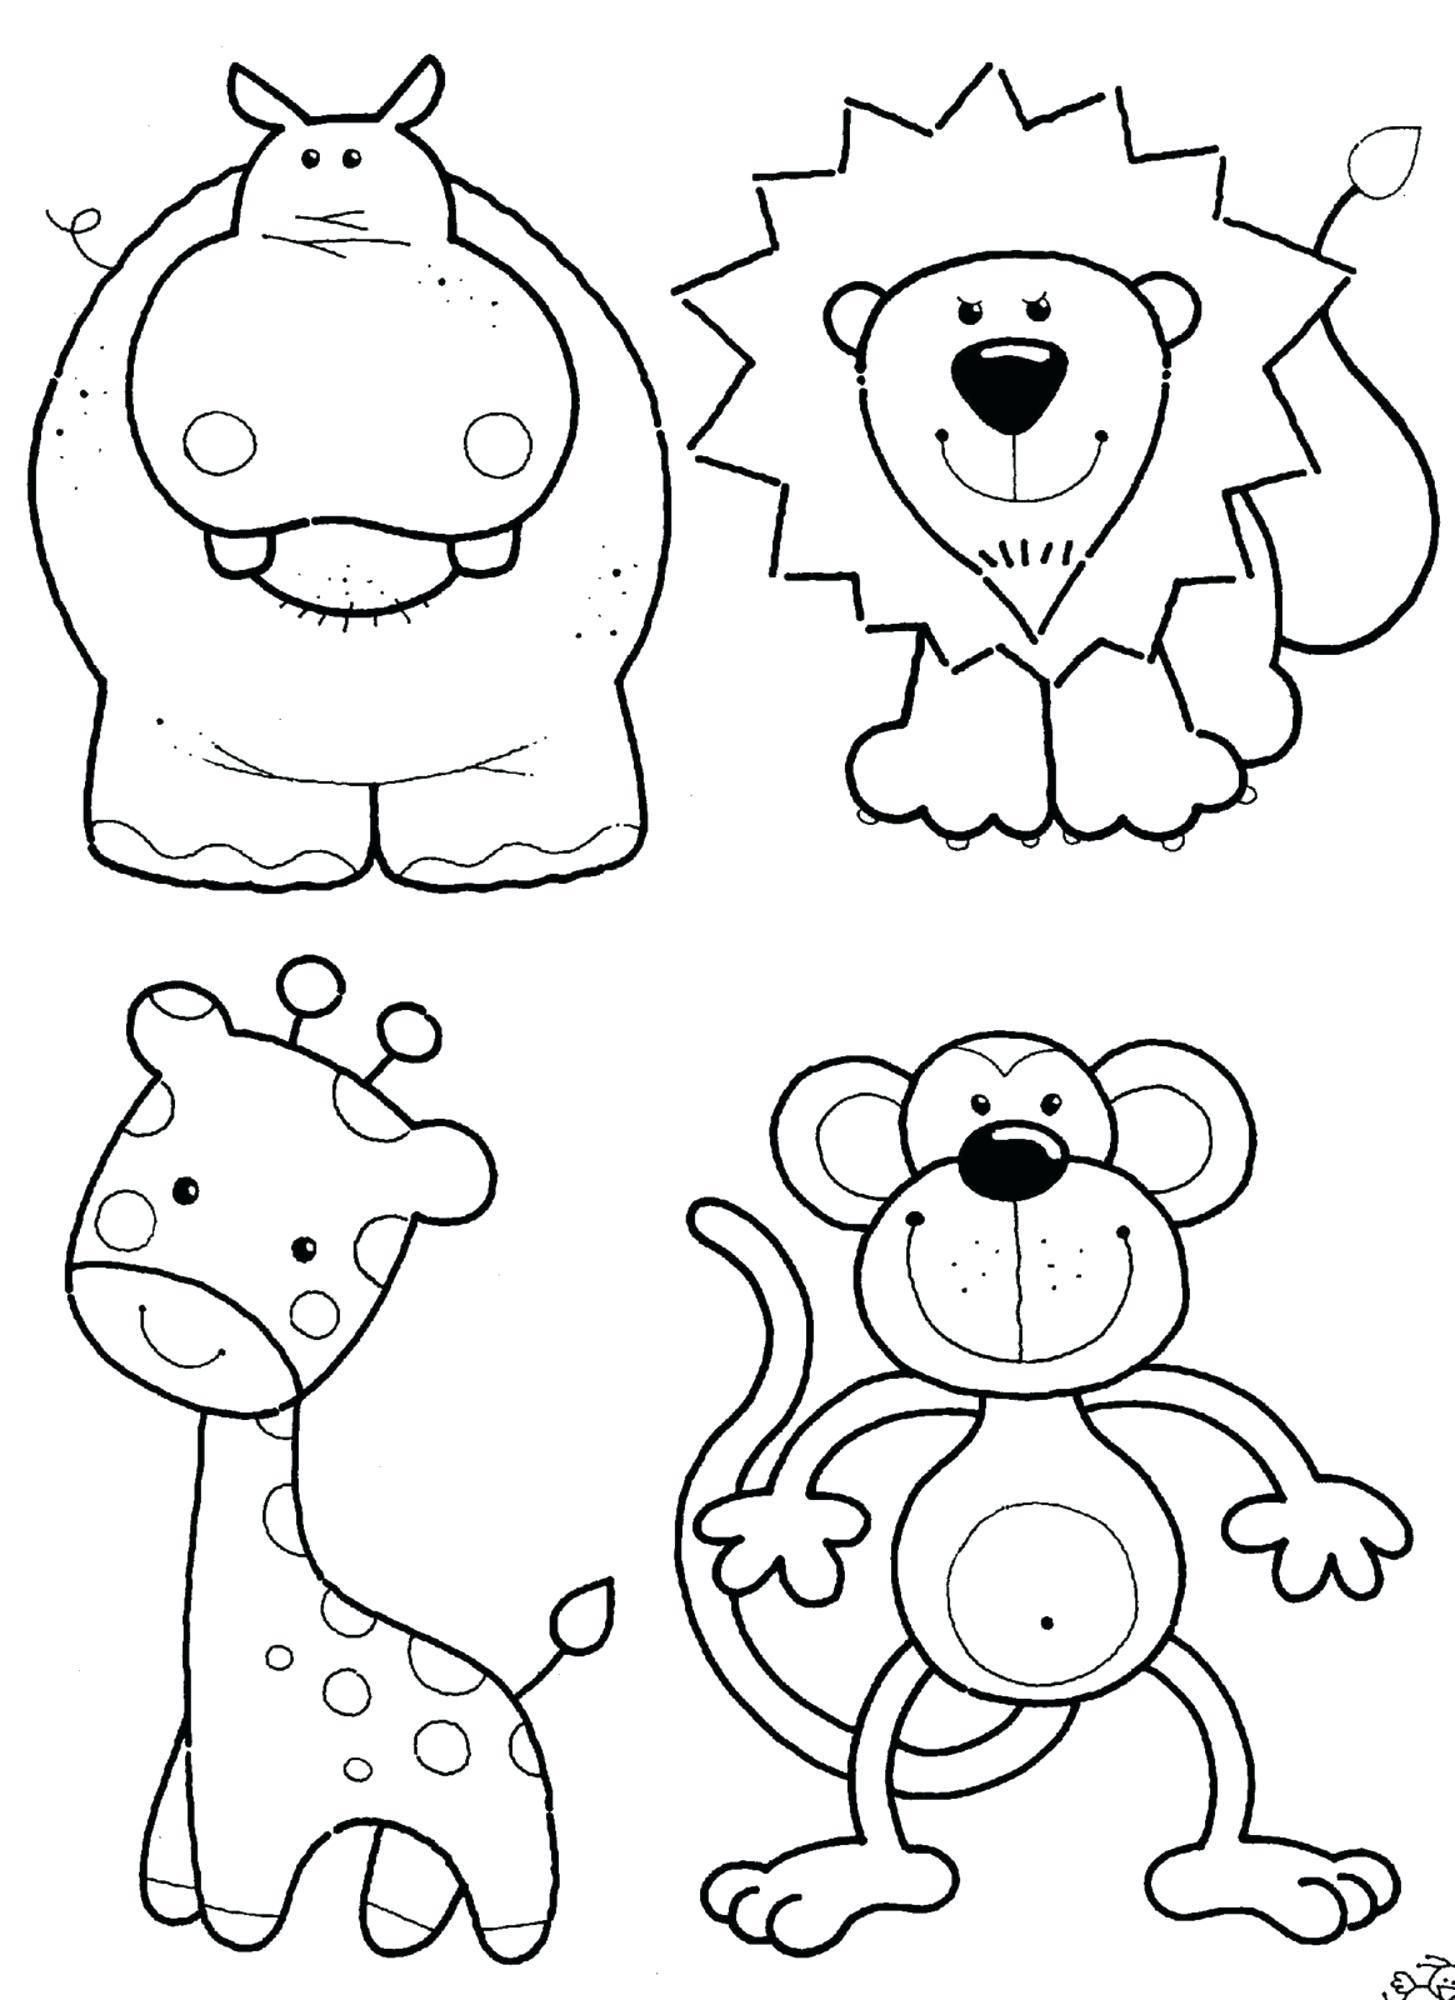 10 Printable Zoo Animal Coloring Sheets in 10  Zoo coloring